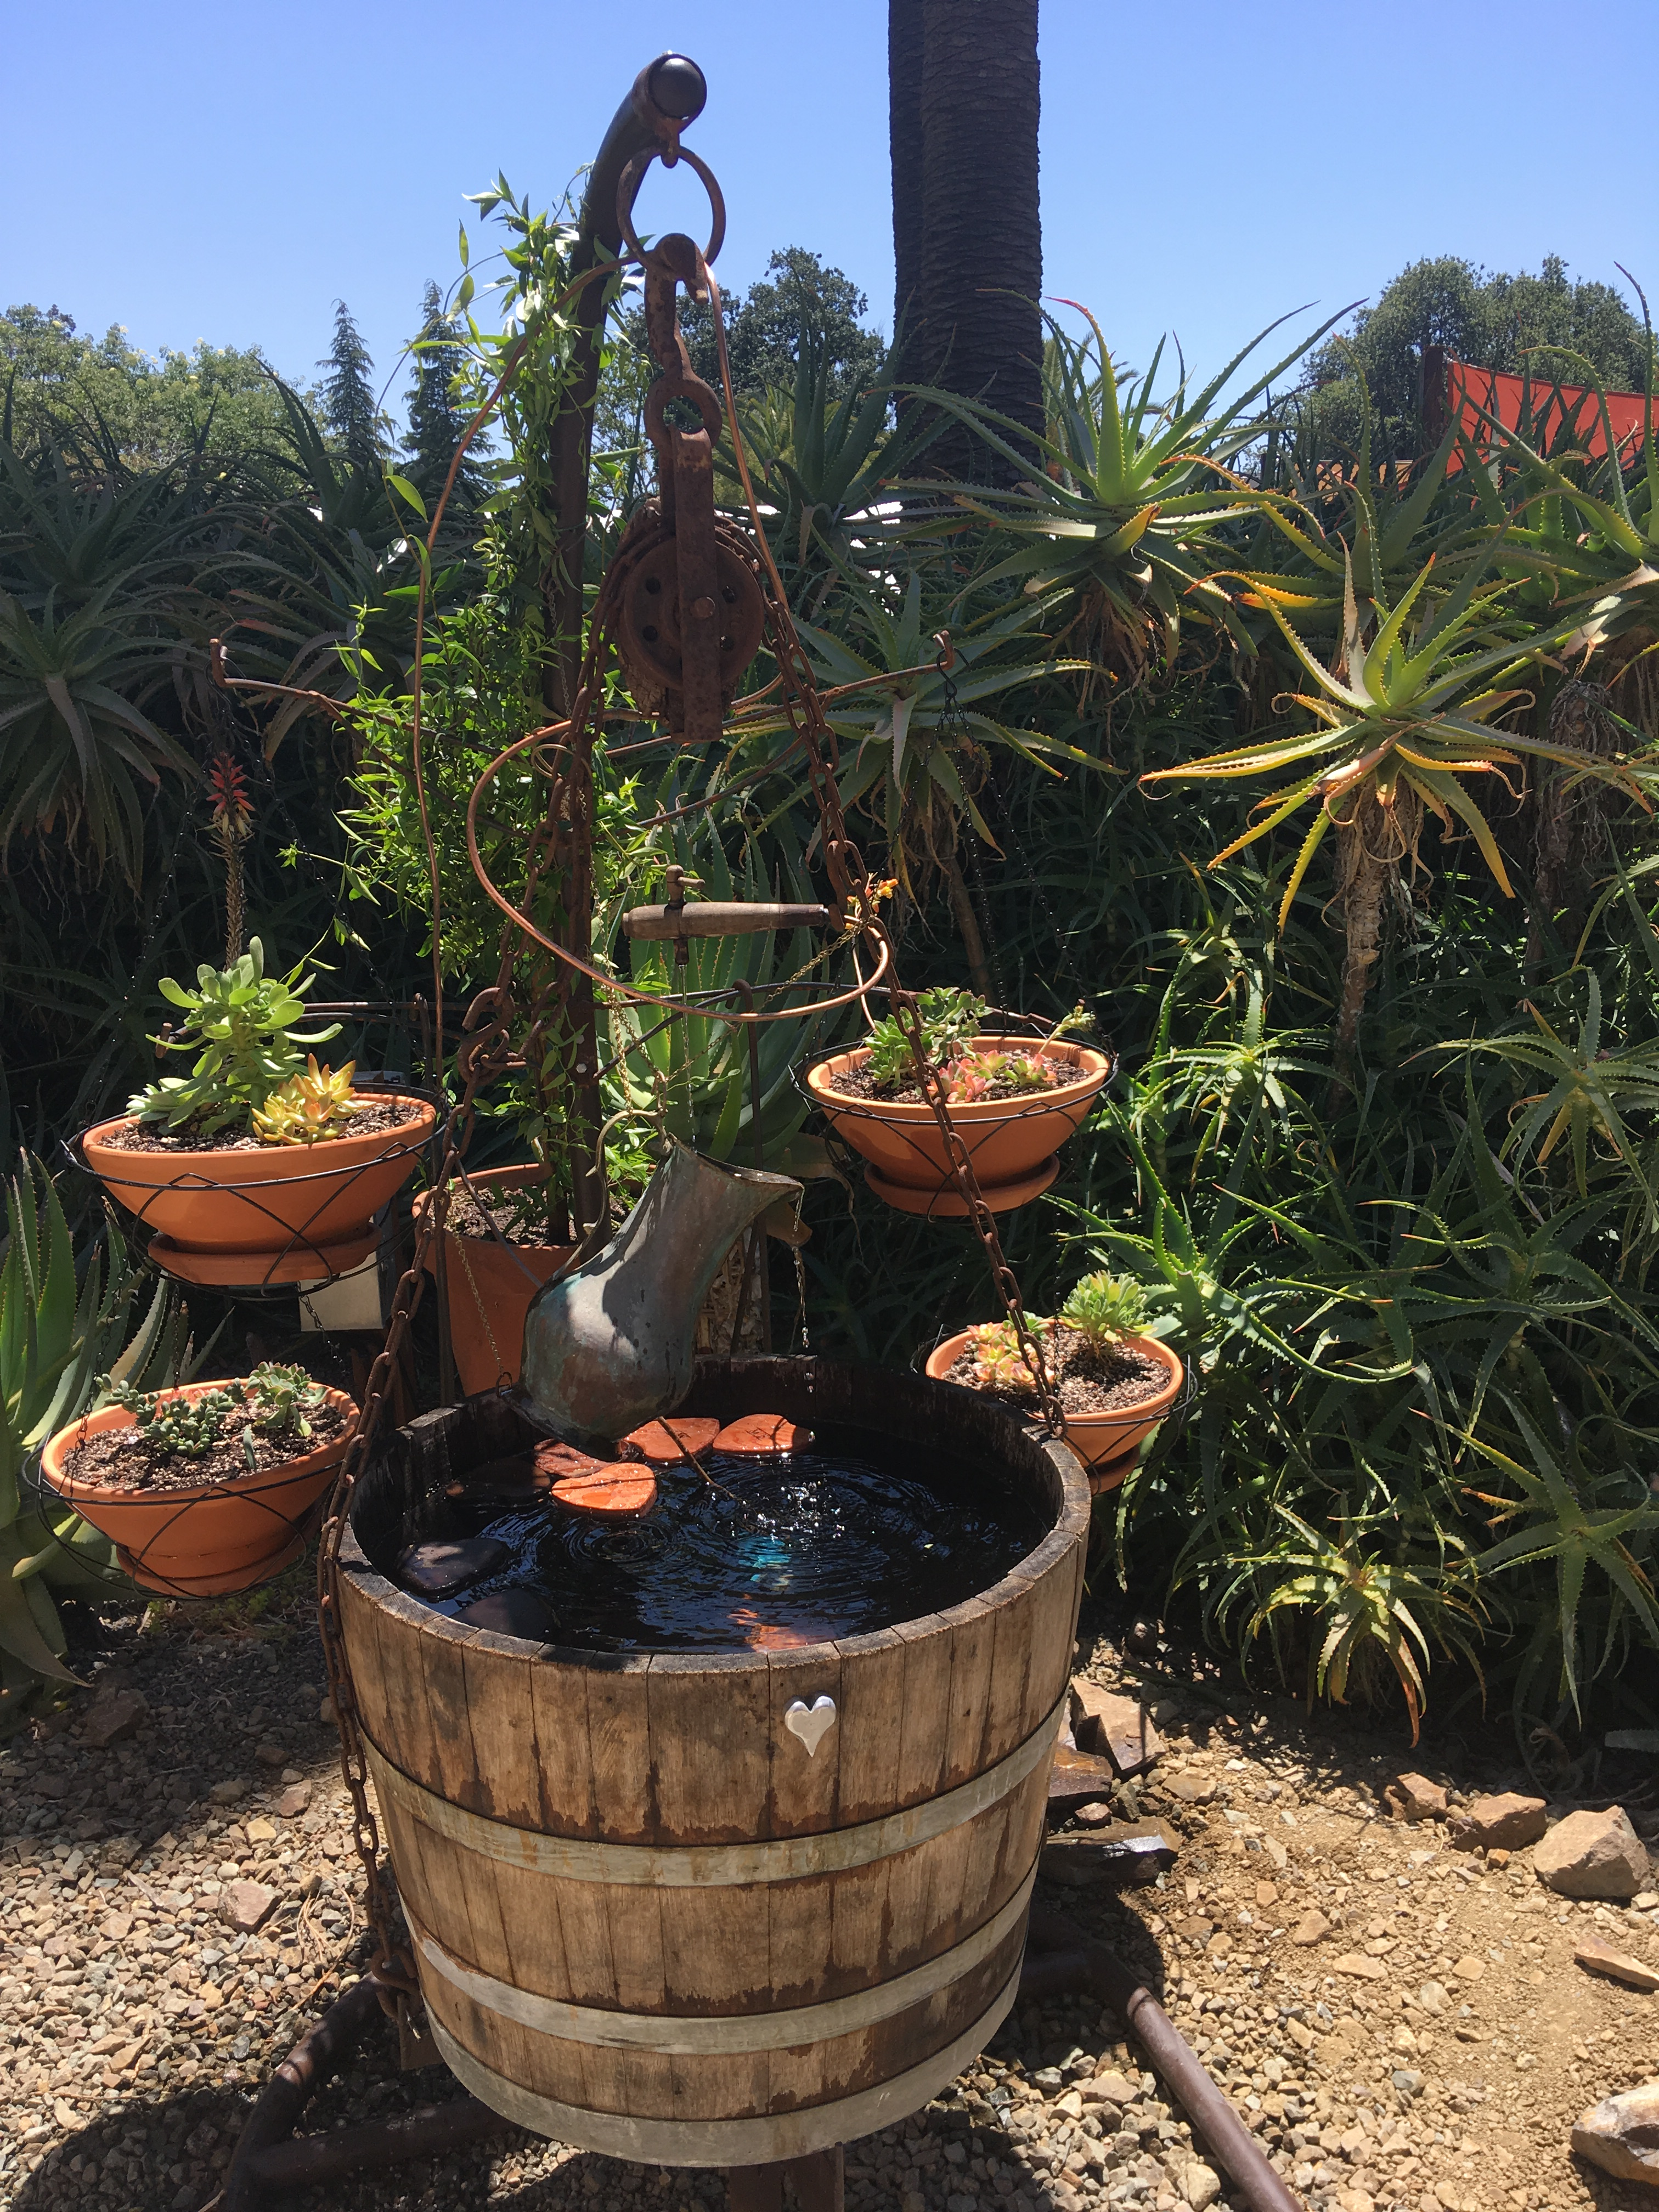 Sculptures and Fountain Installed at The Ruth Bancroft Garden